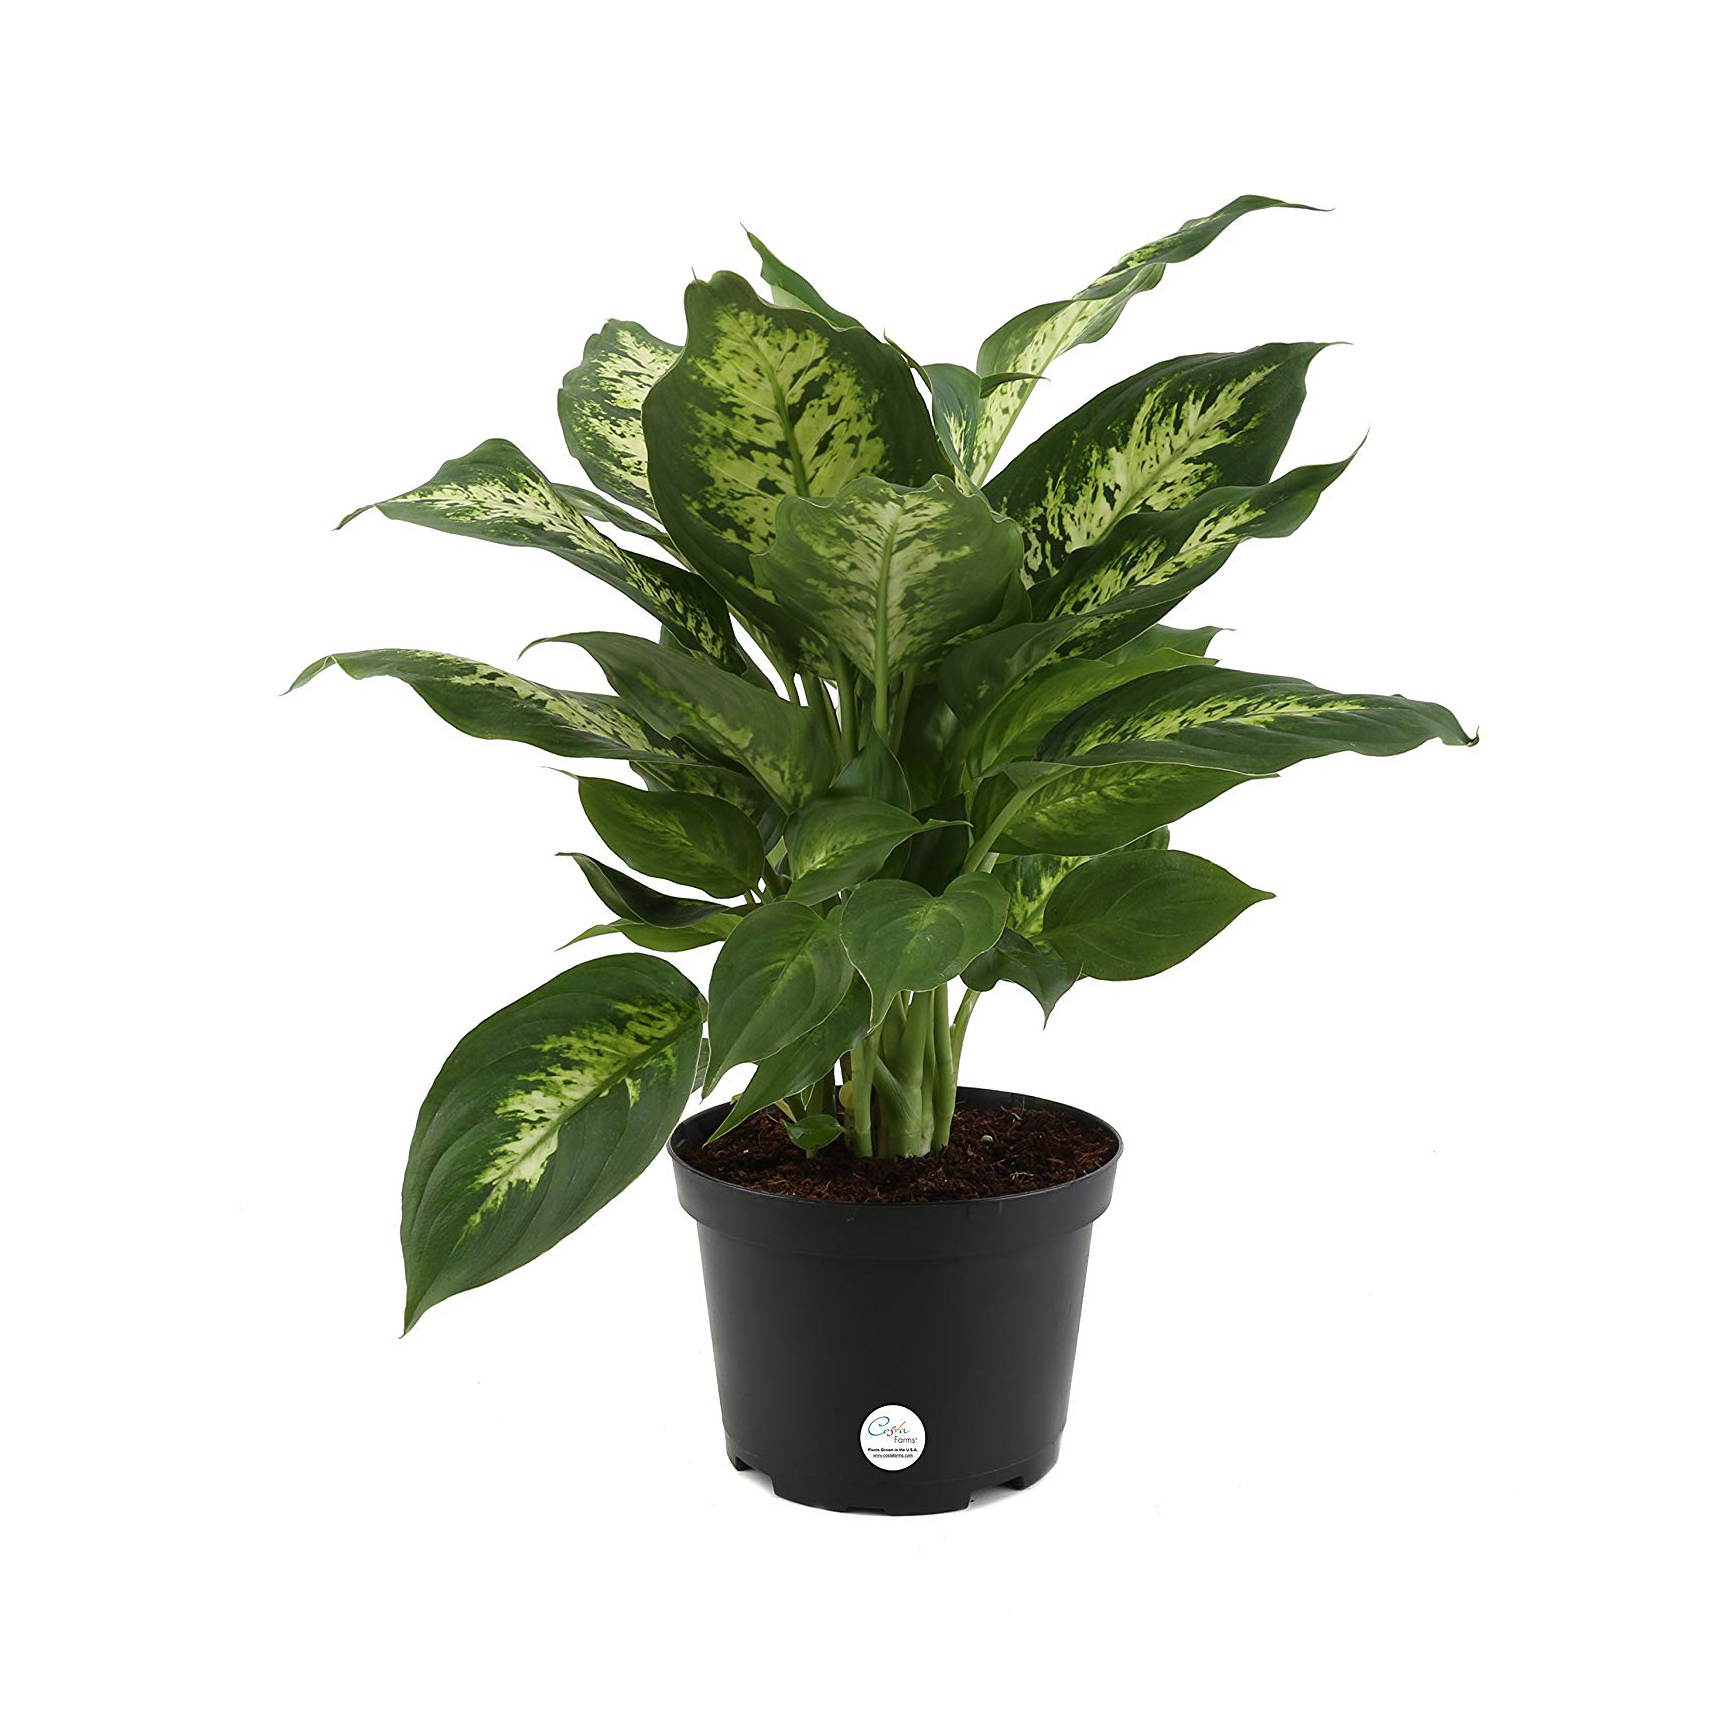 How to Grow and Care for ffenbachia Plants | Apartment ... Houseplant Ffenbachia Low Light on low light health, low light palms, low light flowers outdoors, low light shrubs, low light bromeliads, low maintenance shade plants, low light orchids, low palm bushes, low light trees, low light plants, low maintenance indoor plants, low light landscaping, low light weeds, low light succulents, low light tropicals, low light roses, low light bonsai, low light garden, low light vines, low light cactus,